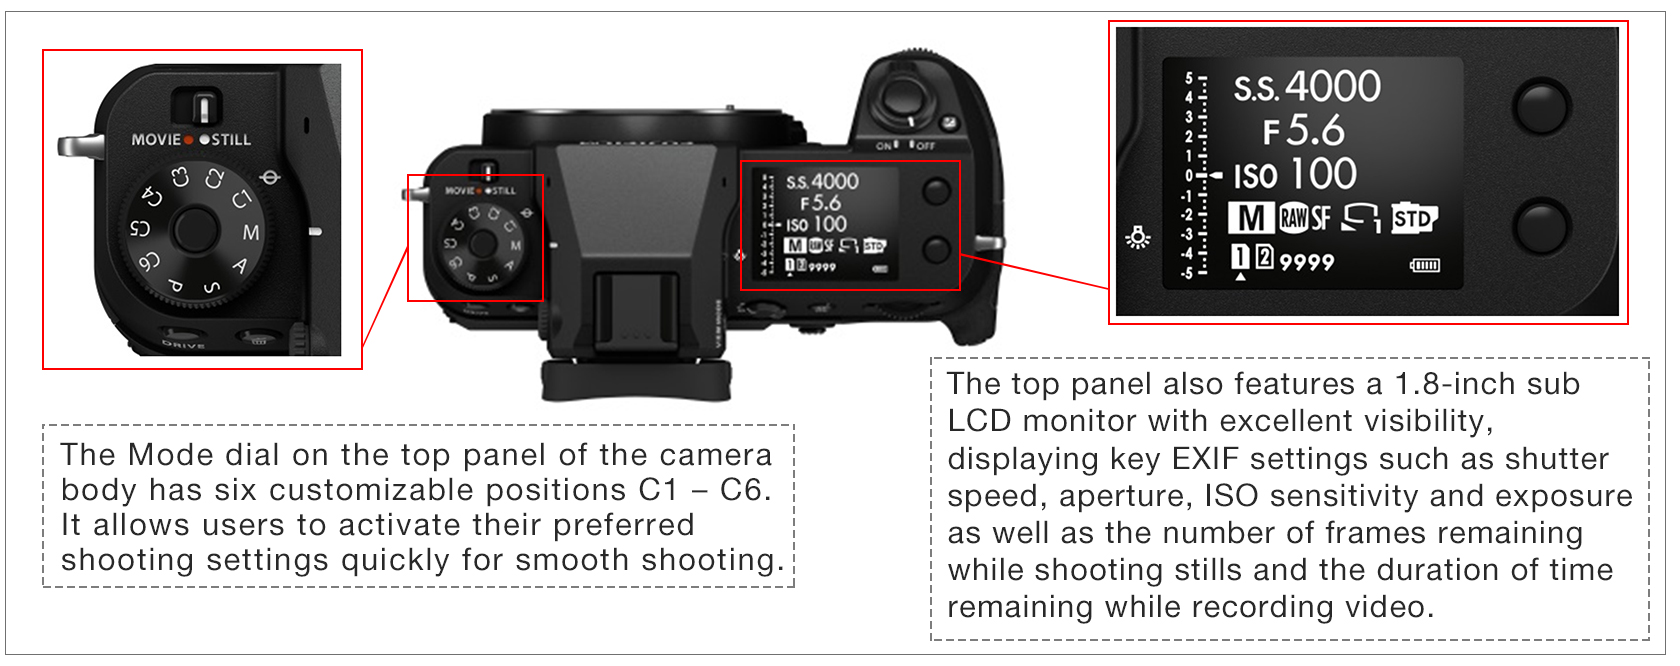 [Image]	On the rear panel is a 3.2-inch main LCD monitor with approximately 100% coverage. It can tilt in three directions to facilitate high- and low-angle shooting, for which the use of the electronic viewfinder (EVF) is difficult.